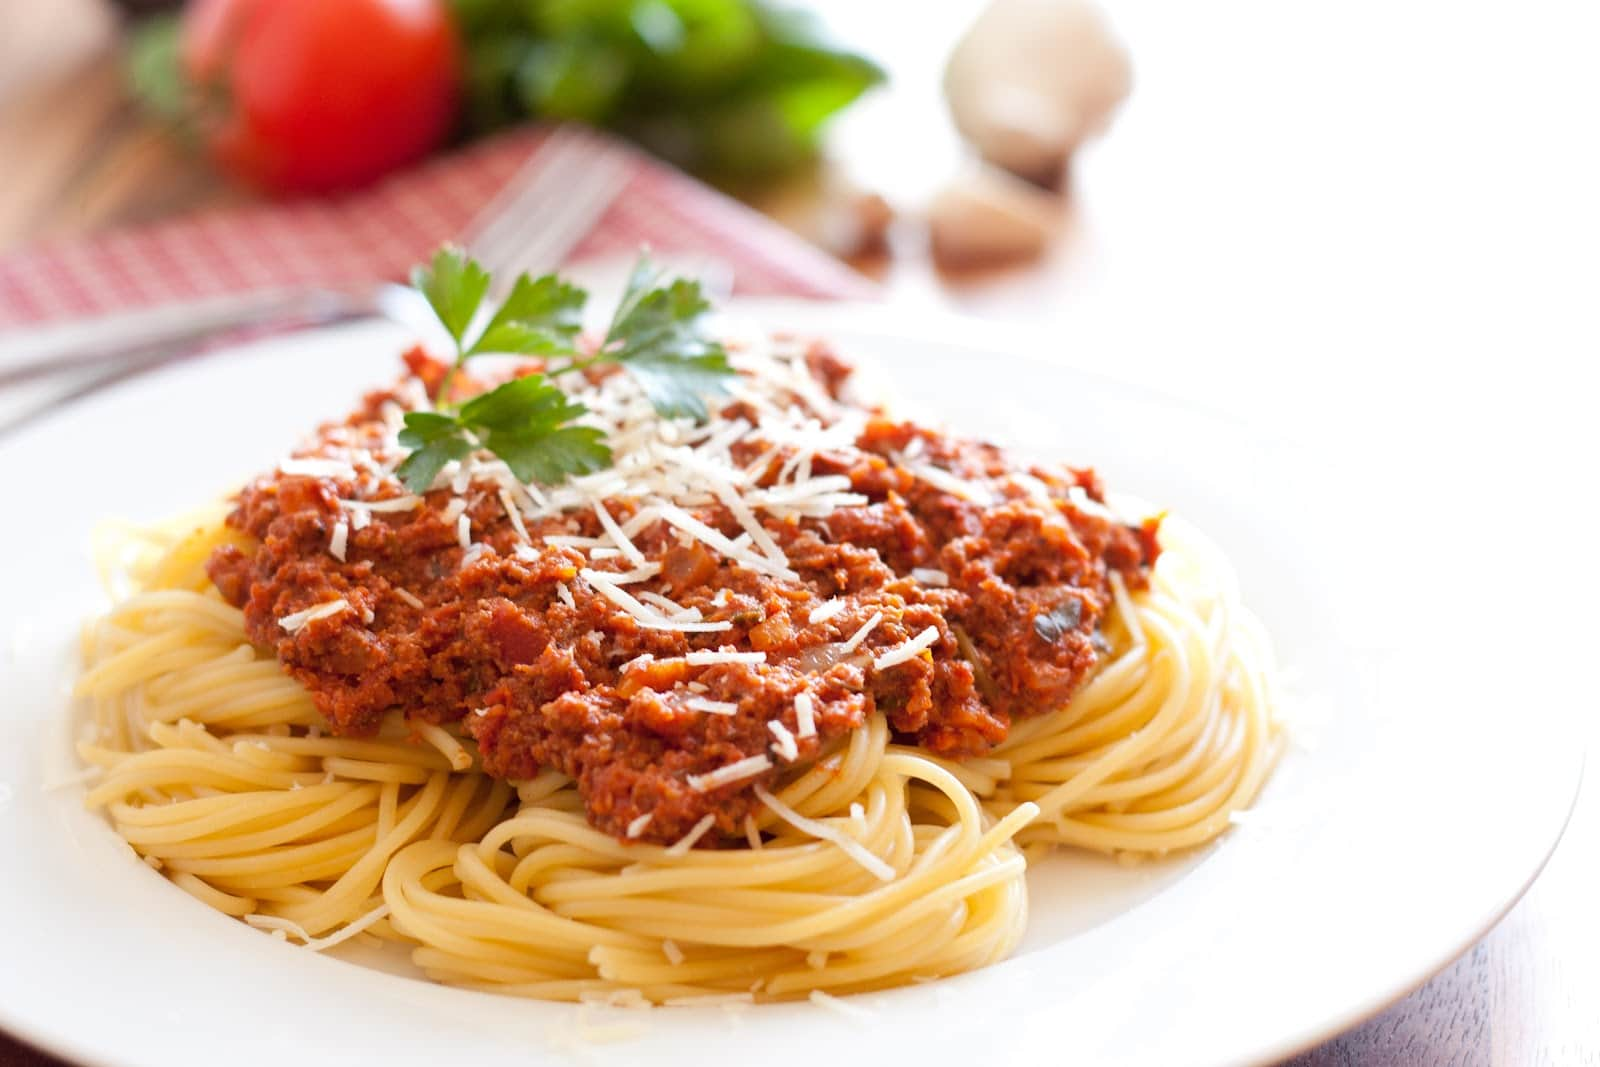 spaghetti+with+meat+sauce11.jpg